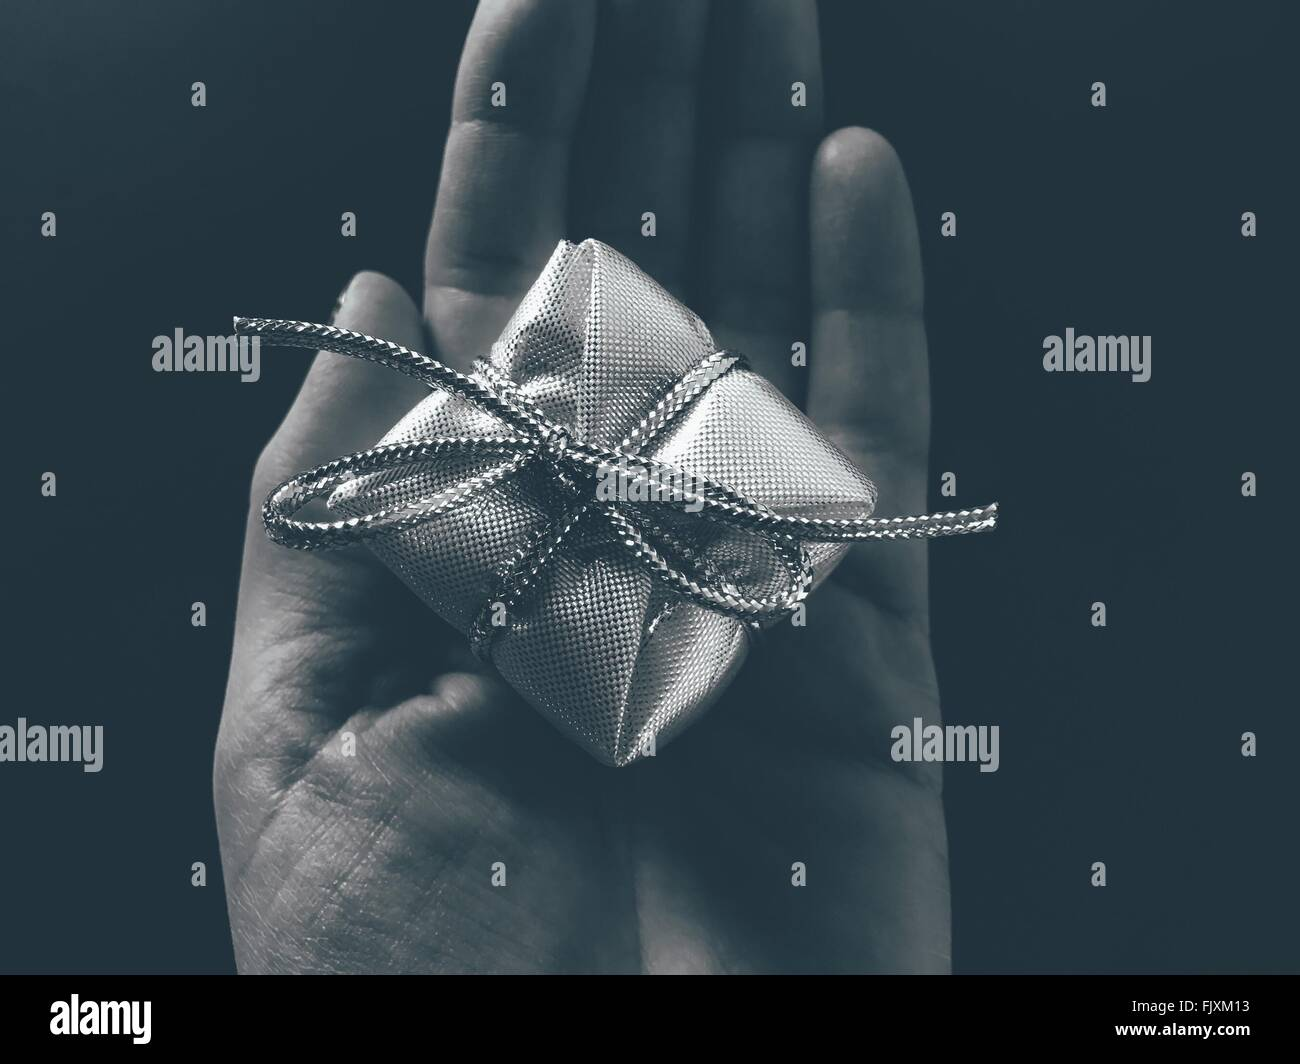 Close-Up Of Hand Holding Gift Over Black Background - Stock Image